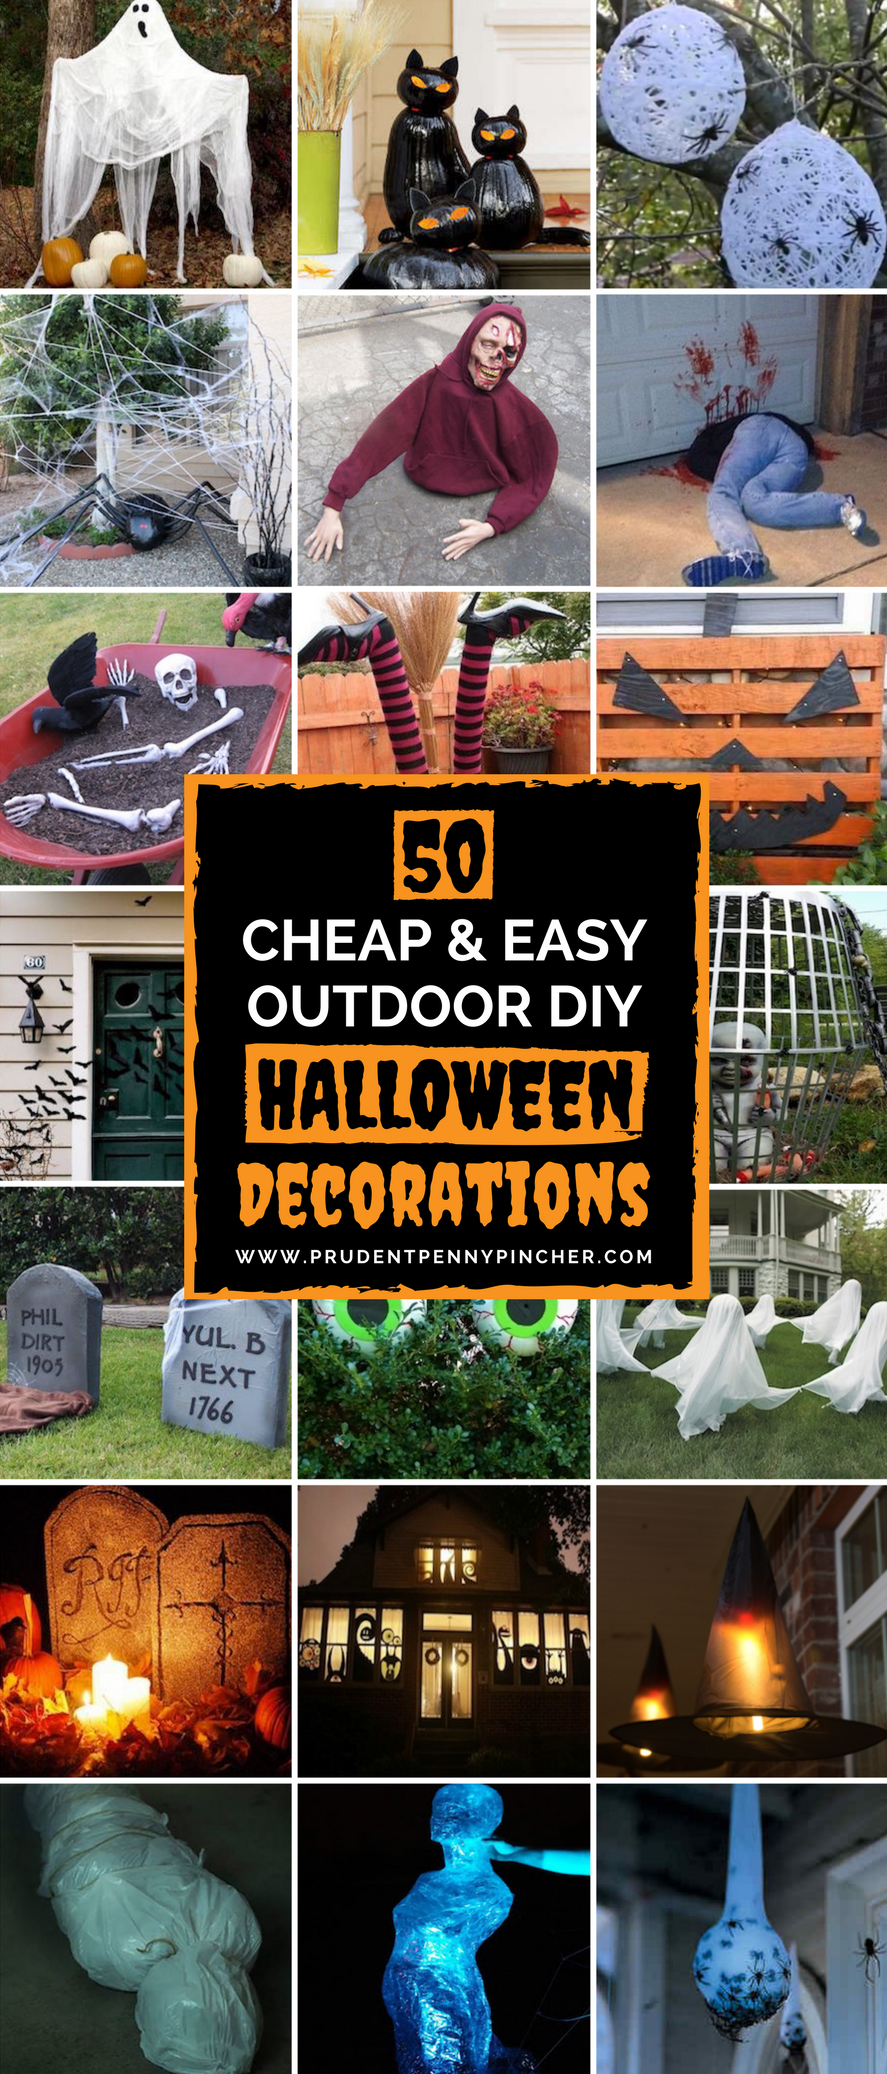 50 cheap and easy outdoor halloween decor diy ideas Halloween decoration diy cheap